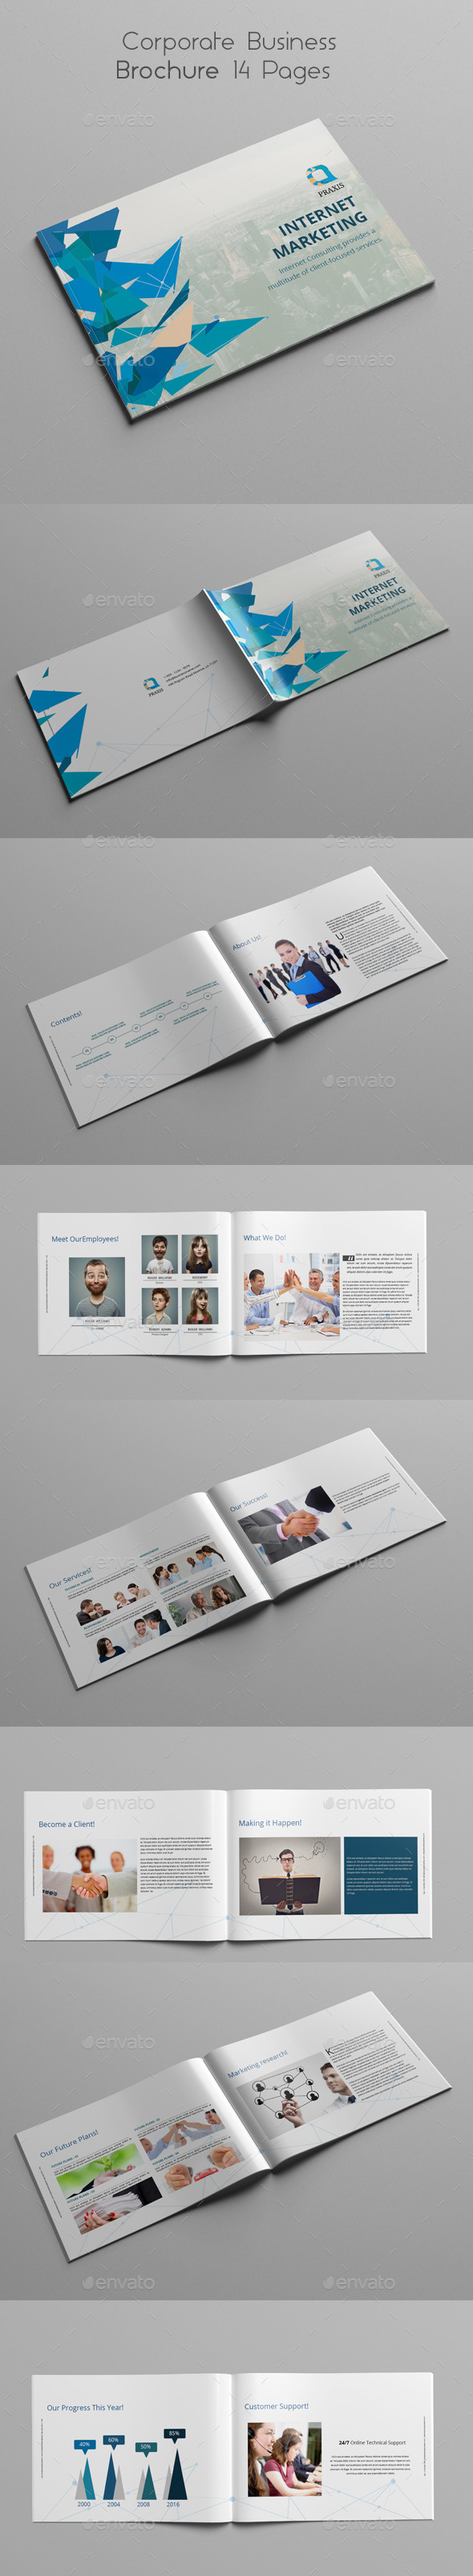 GraphicRiver Corporate Business Brochure 14 Pages 10684032